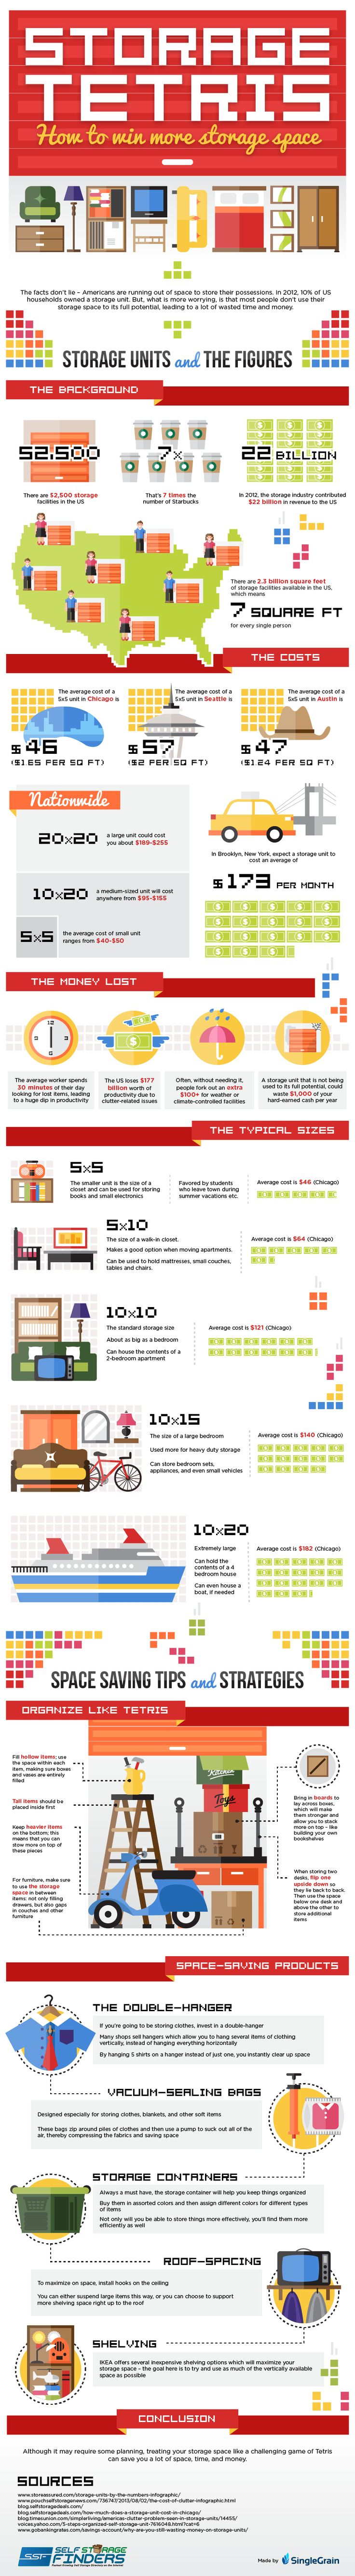 Self Storage in the US : American households are in need of extra storage space. This graphic presents the economics of self storage based on typical storage units' sizes and offers some tips on how we can better manage available space so as we save on time, money and further on temper.  > http://infographicsmania.com/self-storage-in-the-us/?utm_source=Pinterest&utm_medium=ZAKKAS&utm_campaign=SNAP